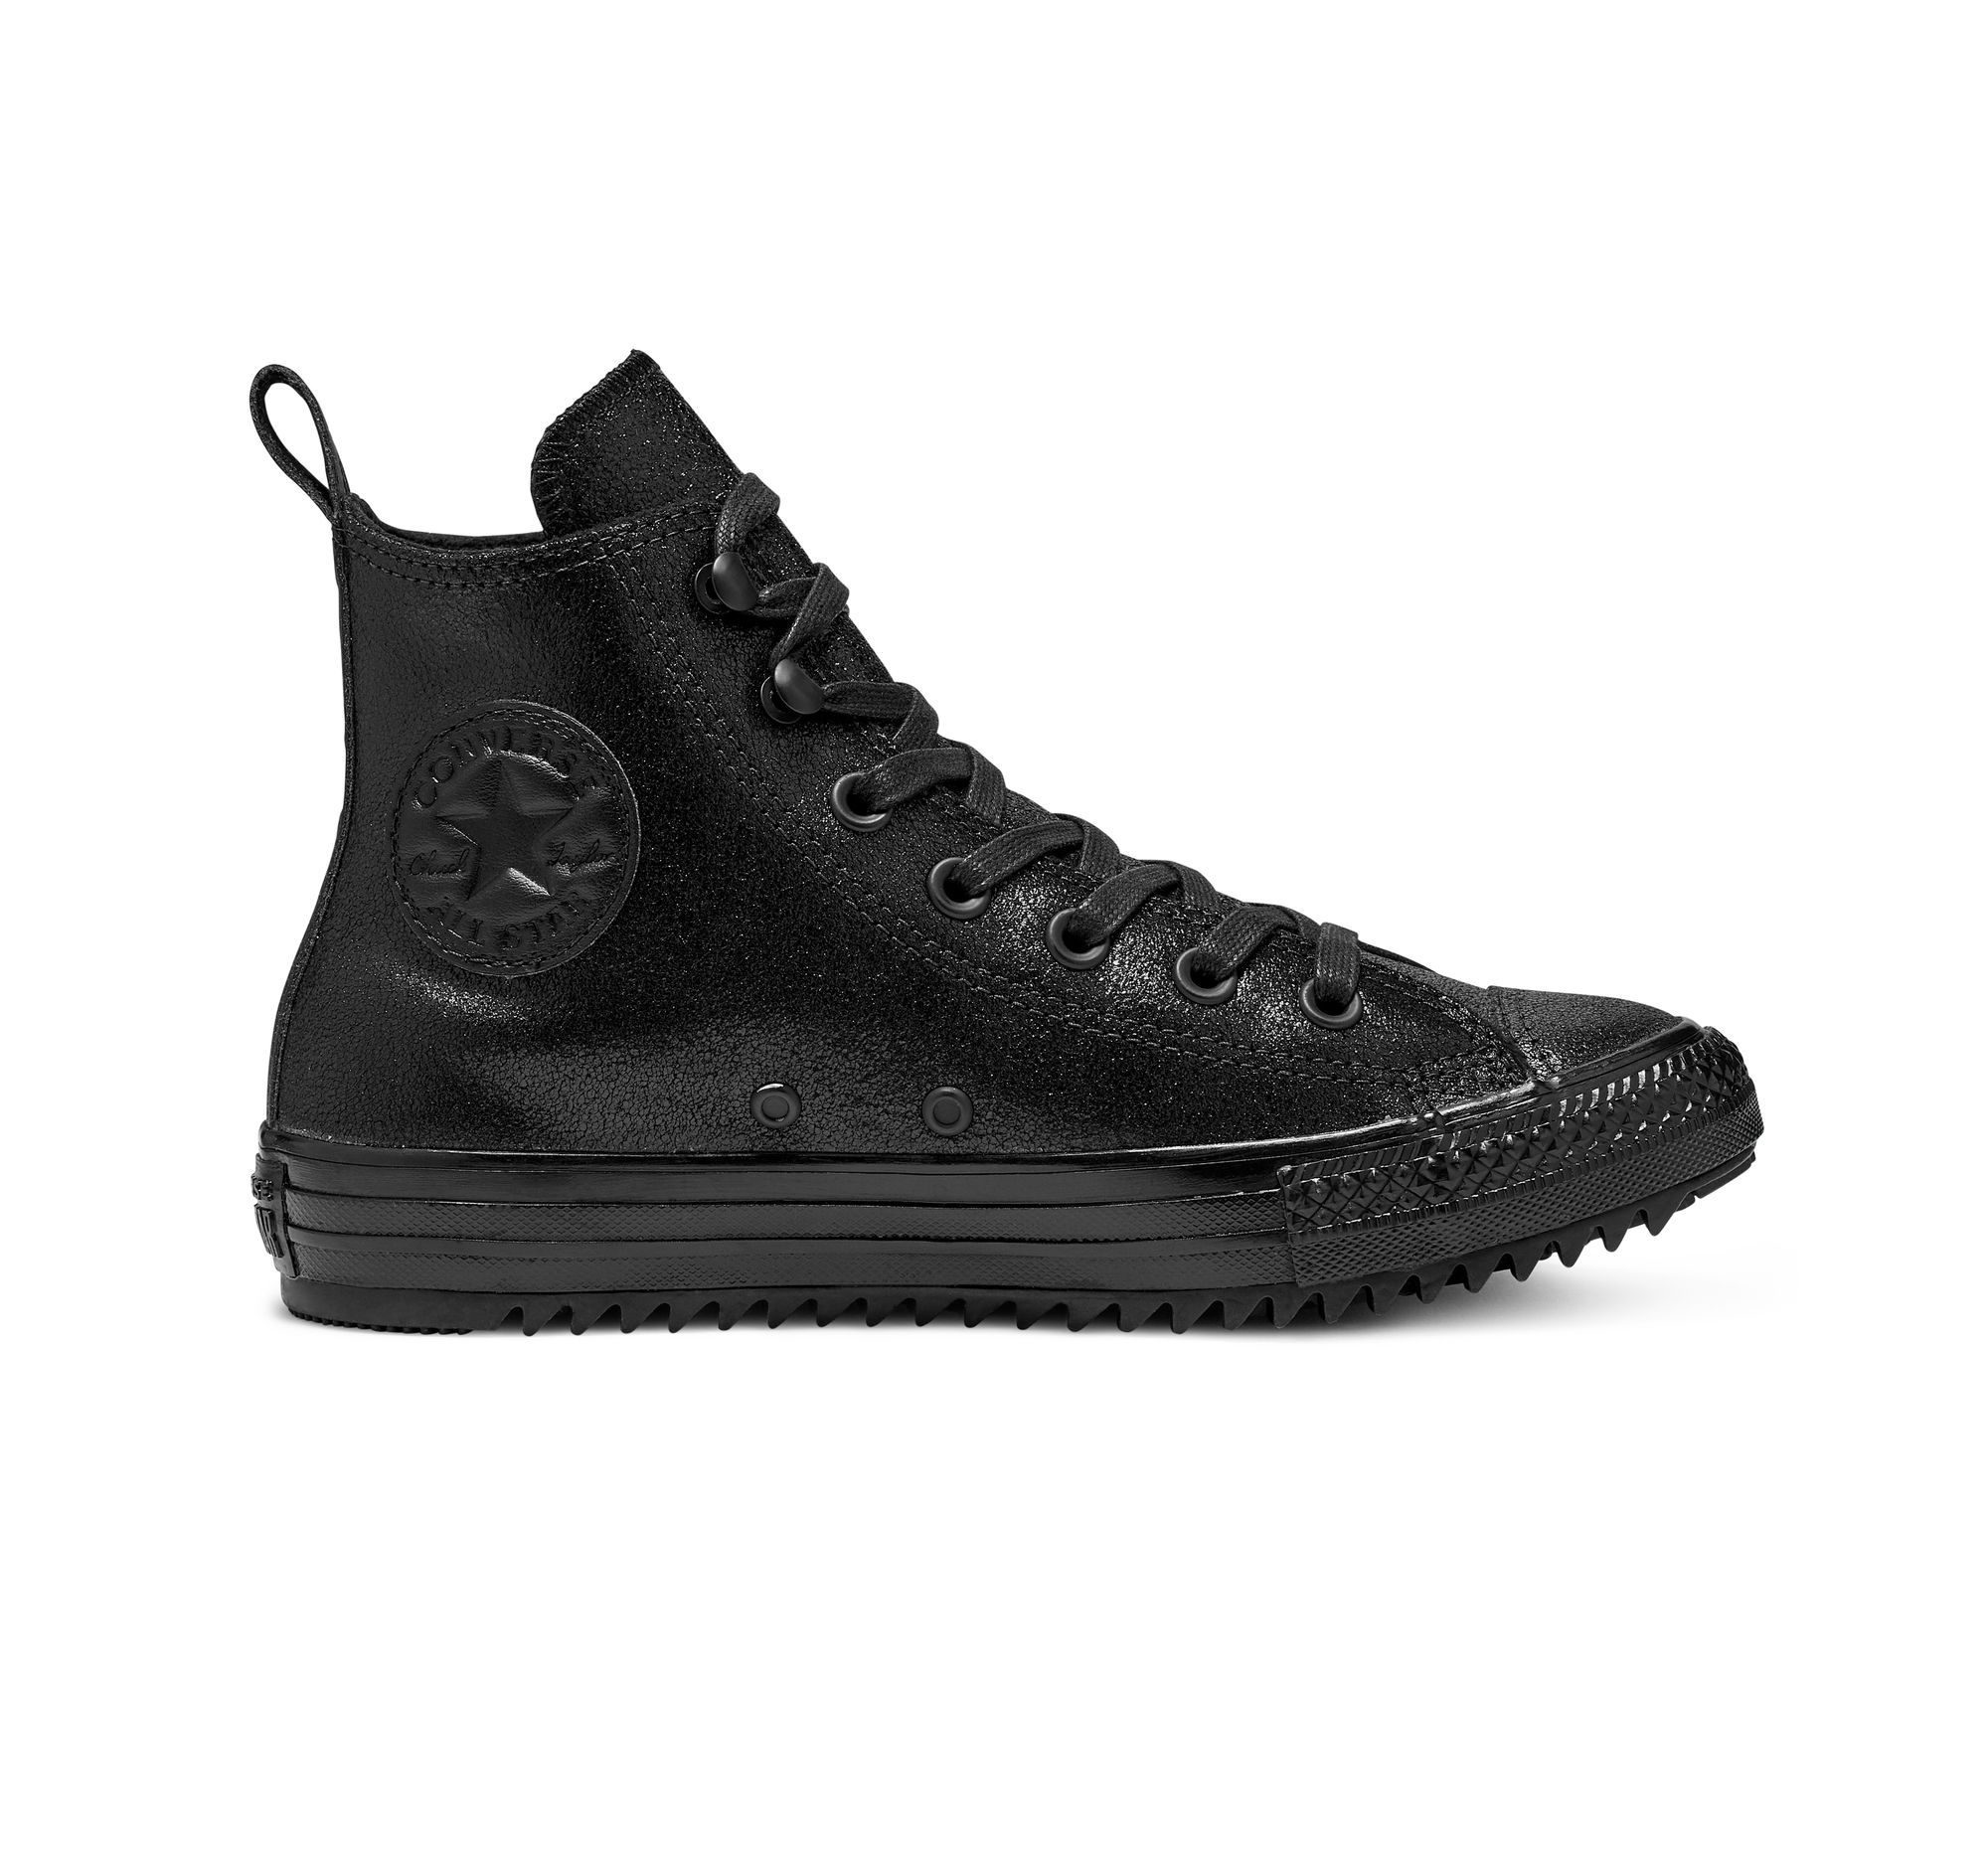 Converse CHUCK TAYLOR ALL STAR Winter boots blackegret